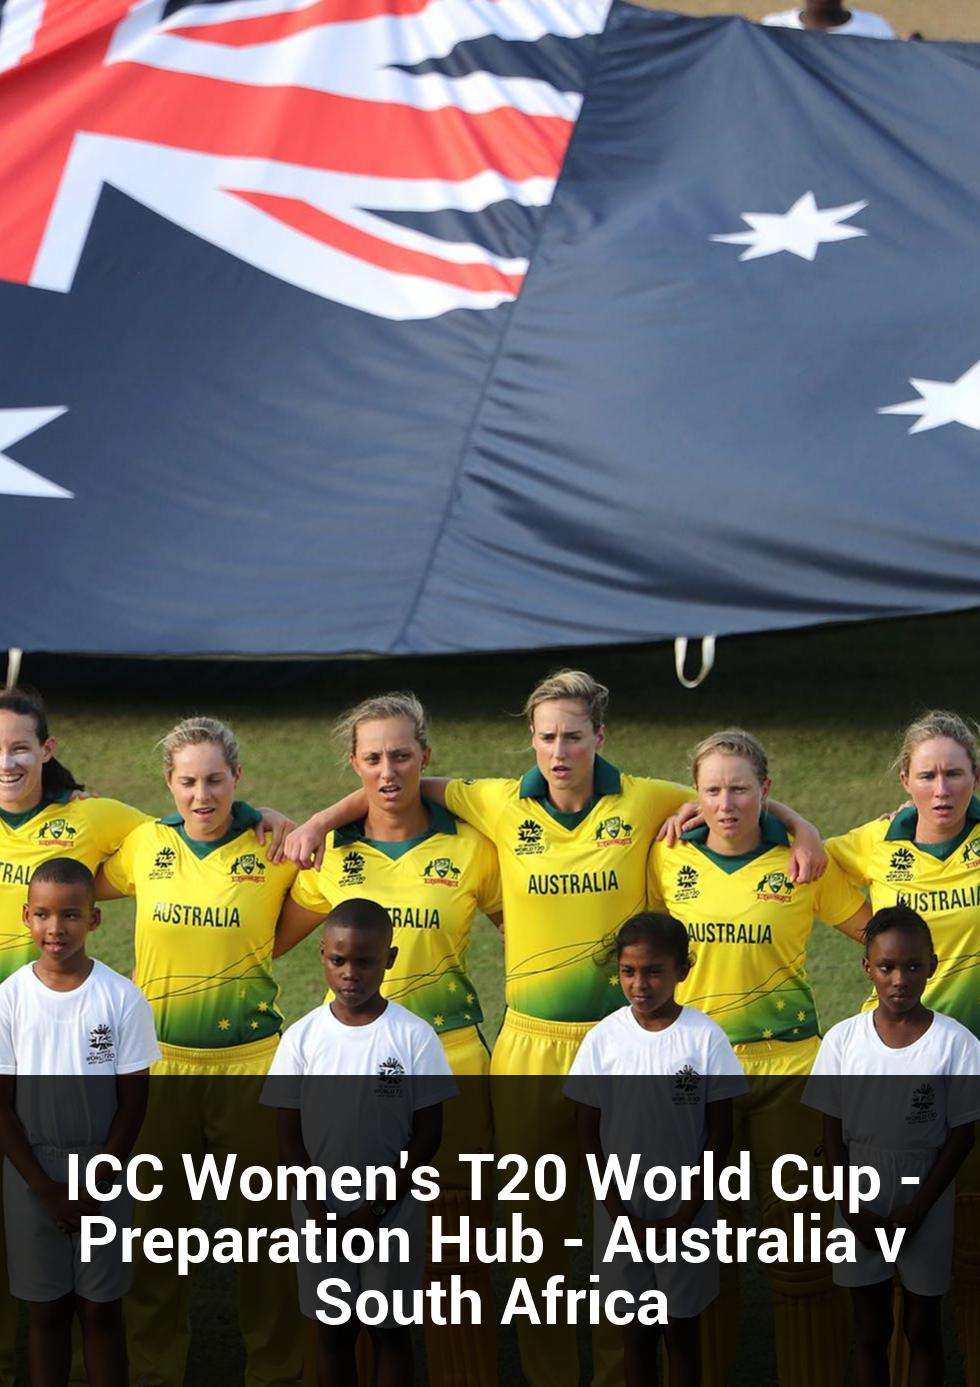 ICC Women's T20 World Cup - Preparation Hub - Australia v South Africa at Karen Rolton Oval